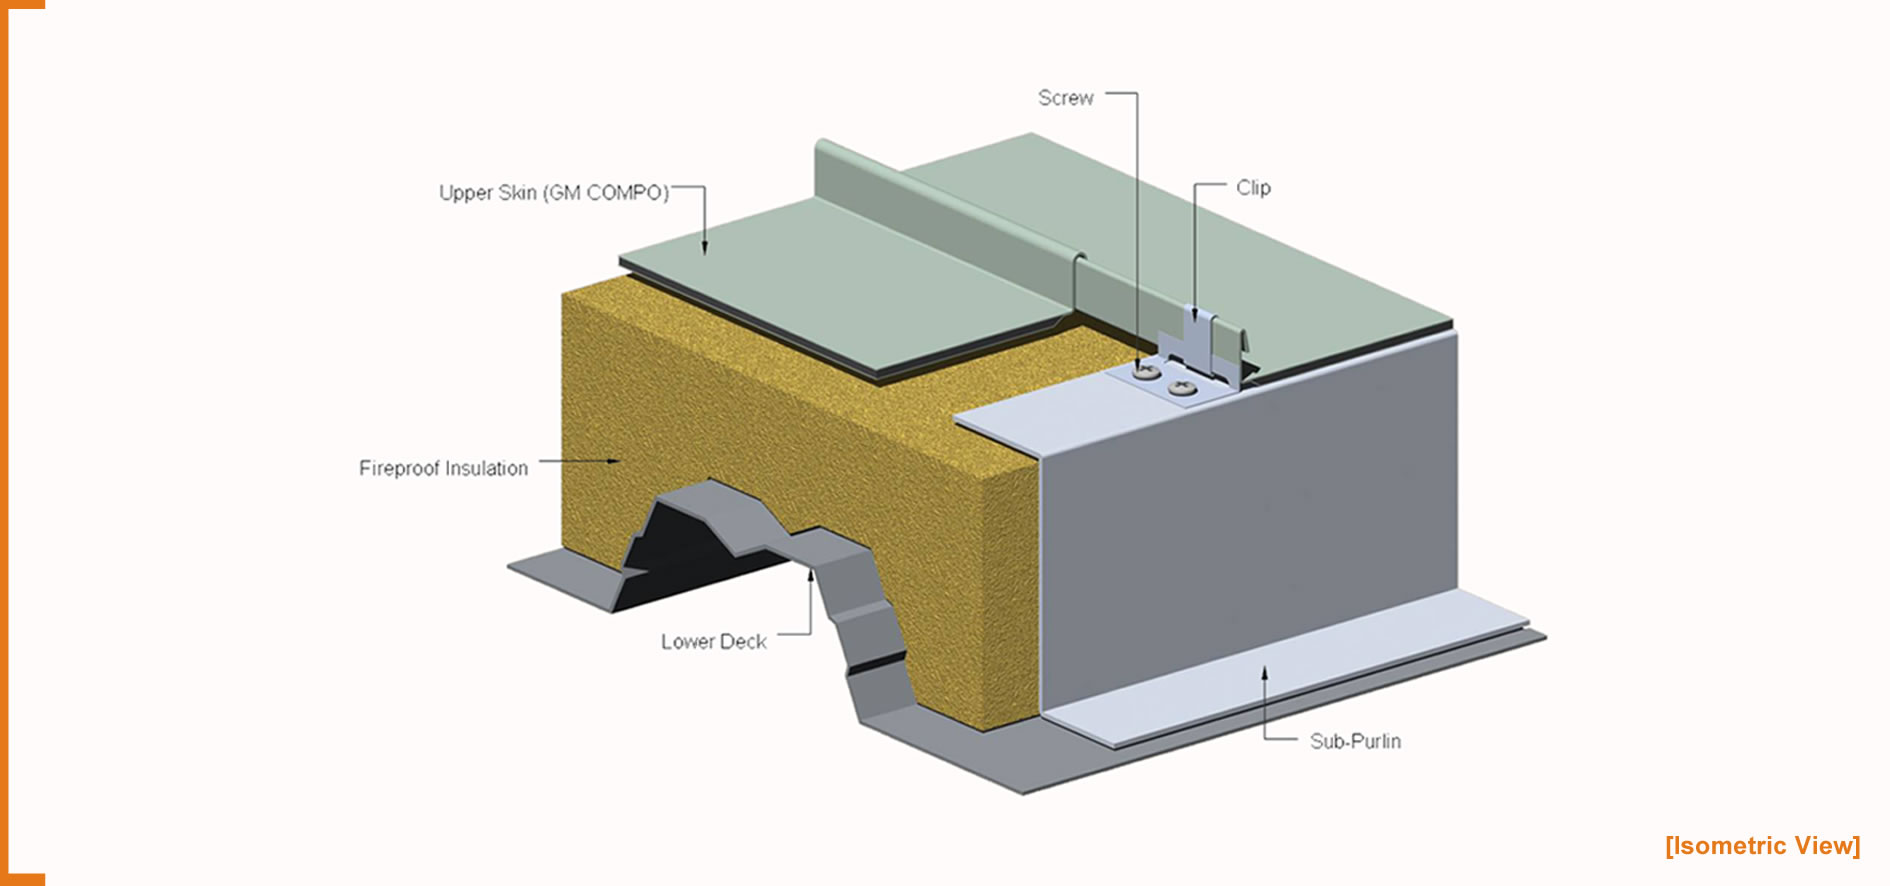 hight resolution of gm compro folded roof isometric view